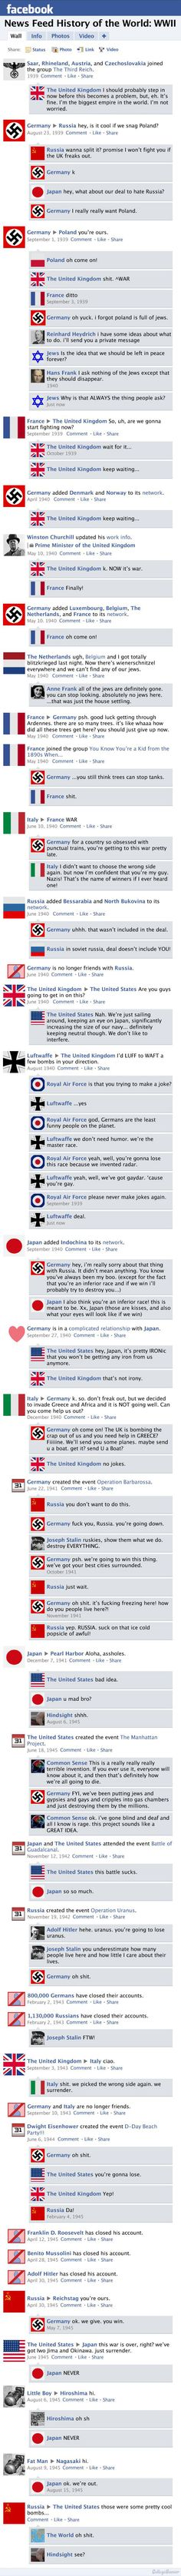 If WW2 was on facebook. What if countries were on Facebook during the WWII era? It might look something like this. lol. Historically correct and witty newsfeed. A good read indeed. http://9gag.com/gag/aKqwRx6?ref=fbp